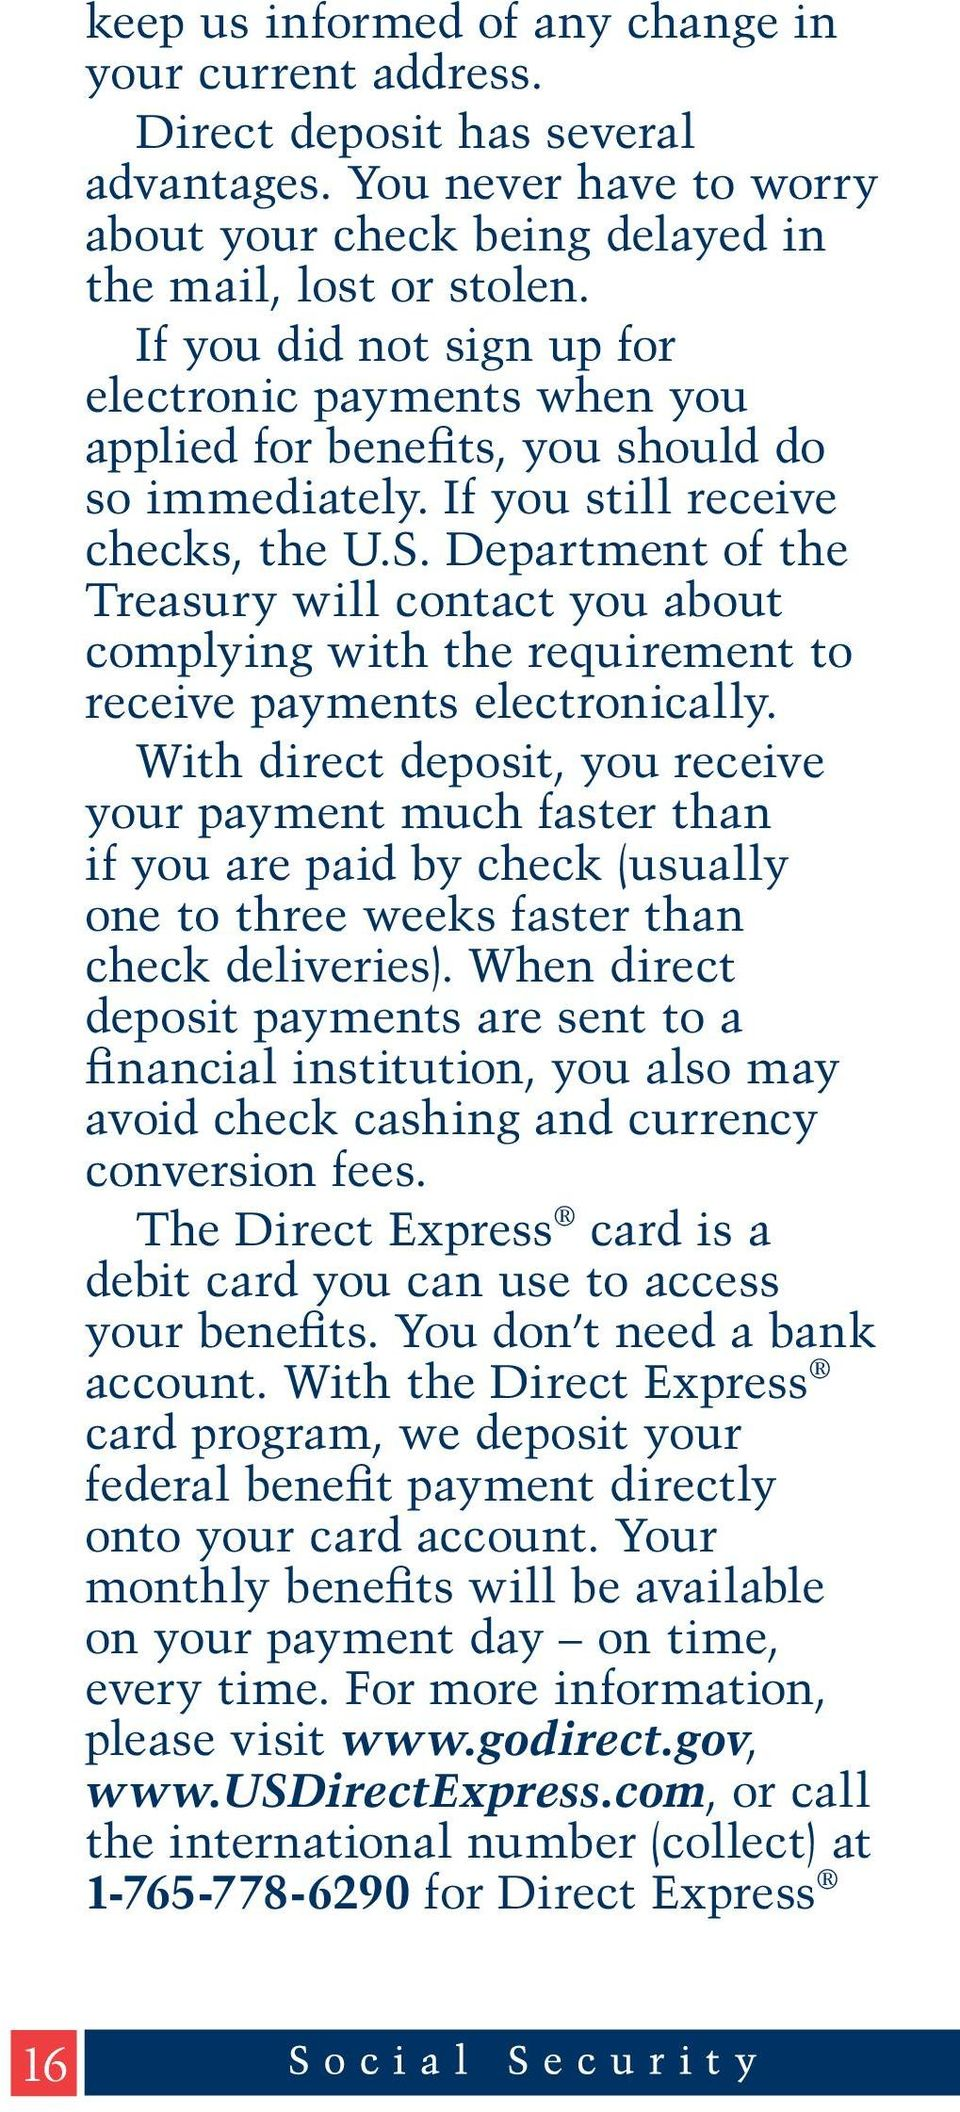 Department of the Treasury will contact you about complying with the requirement to receive payments electronically.